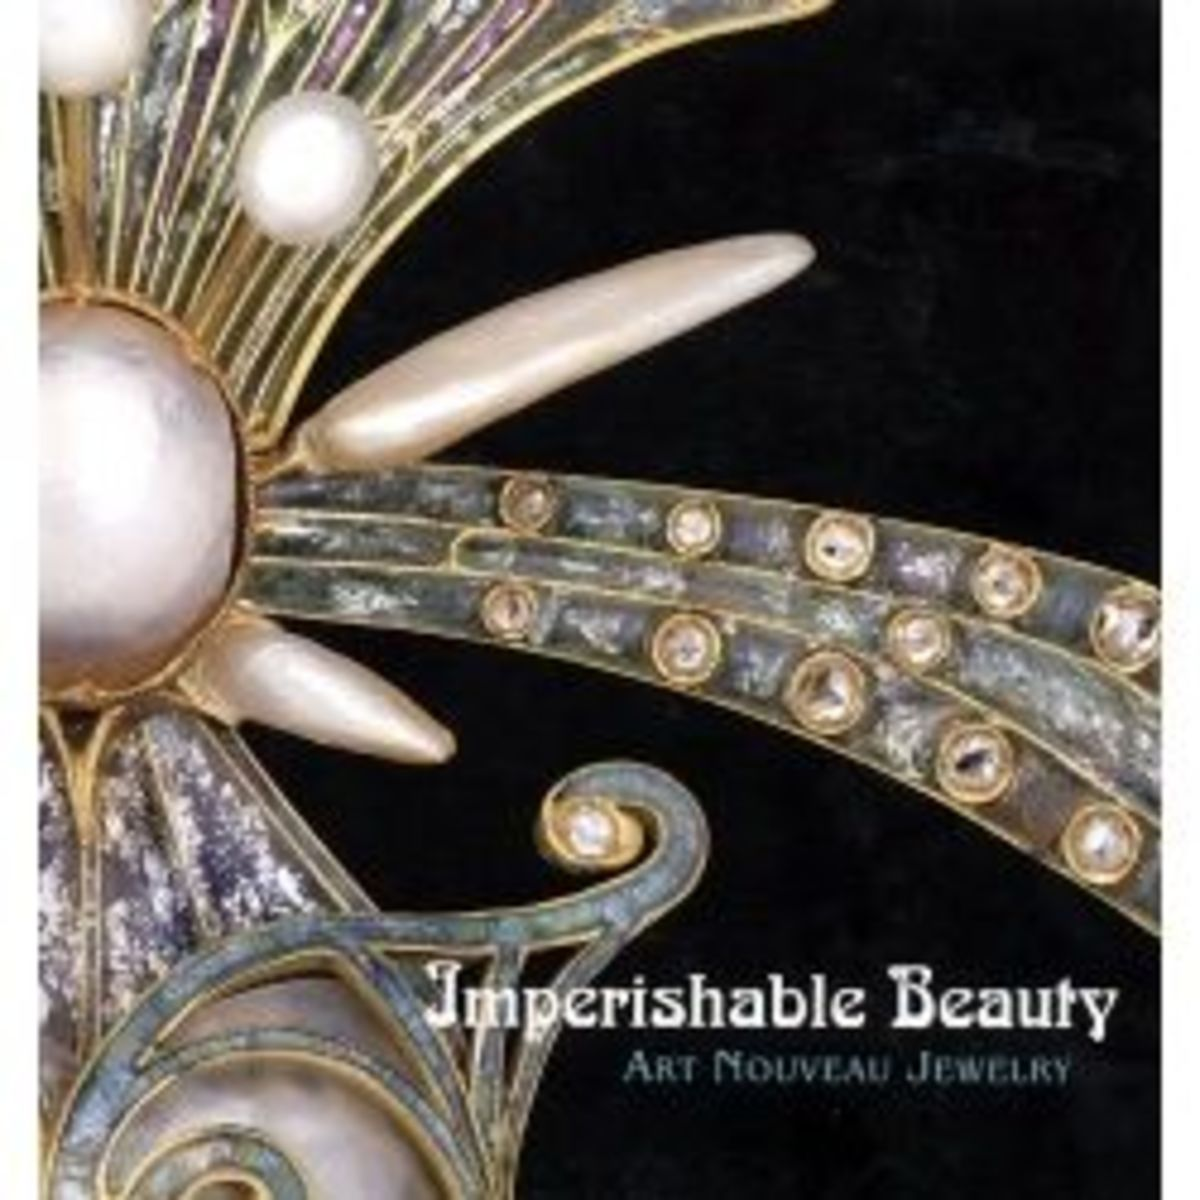 Imperishable Beauty: Art Nouveau Jewelry